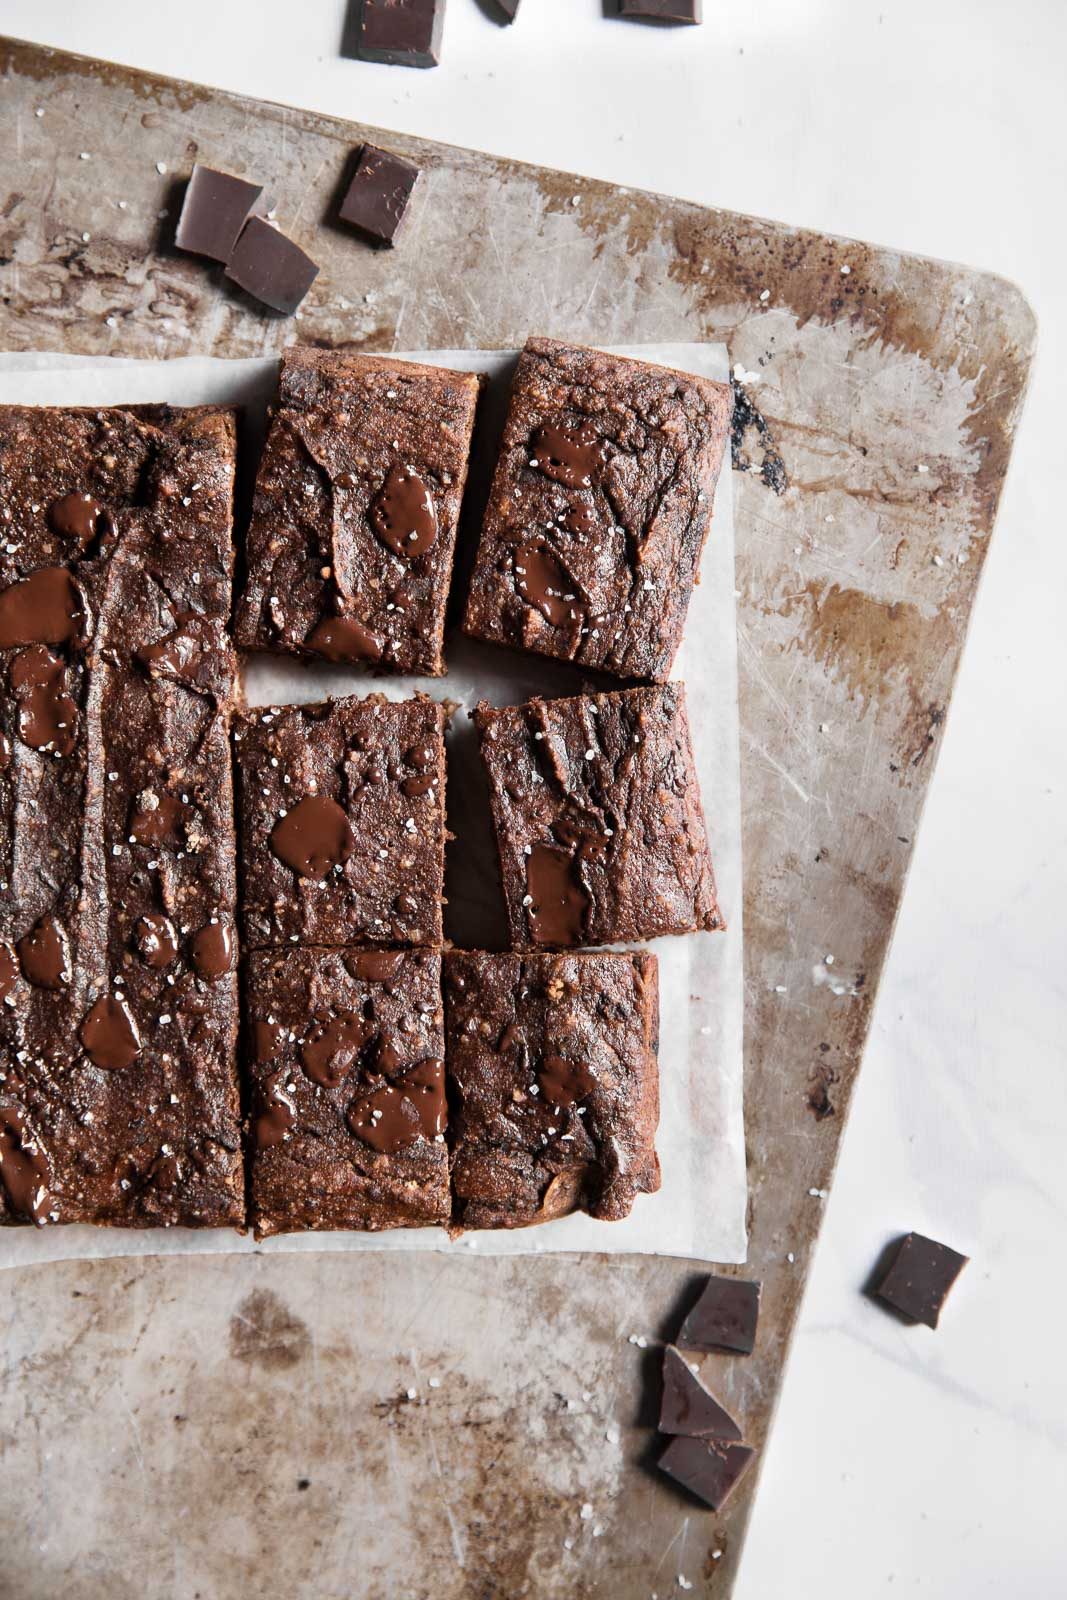 I rounded up 33 brownie & bar recipes that you're going to absolutely LOVE. From granola bars to fudgy skillet brownies - the options are endless!